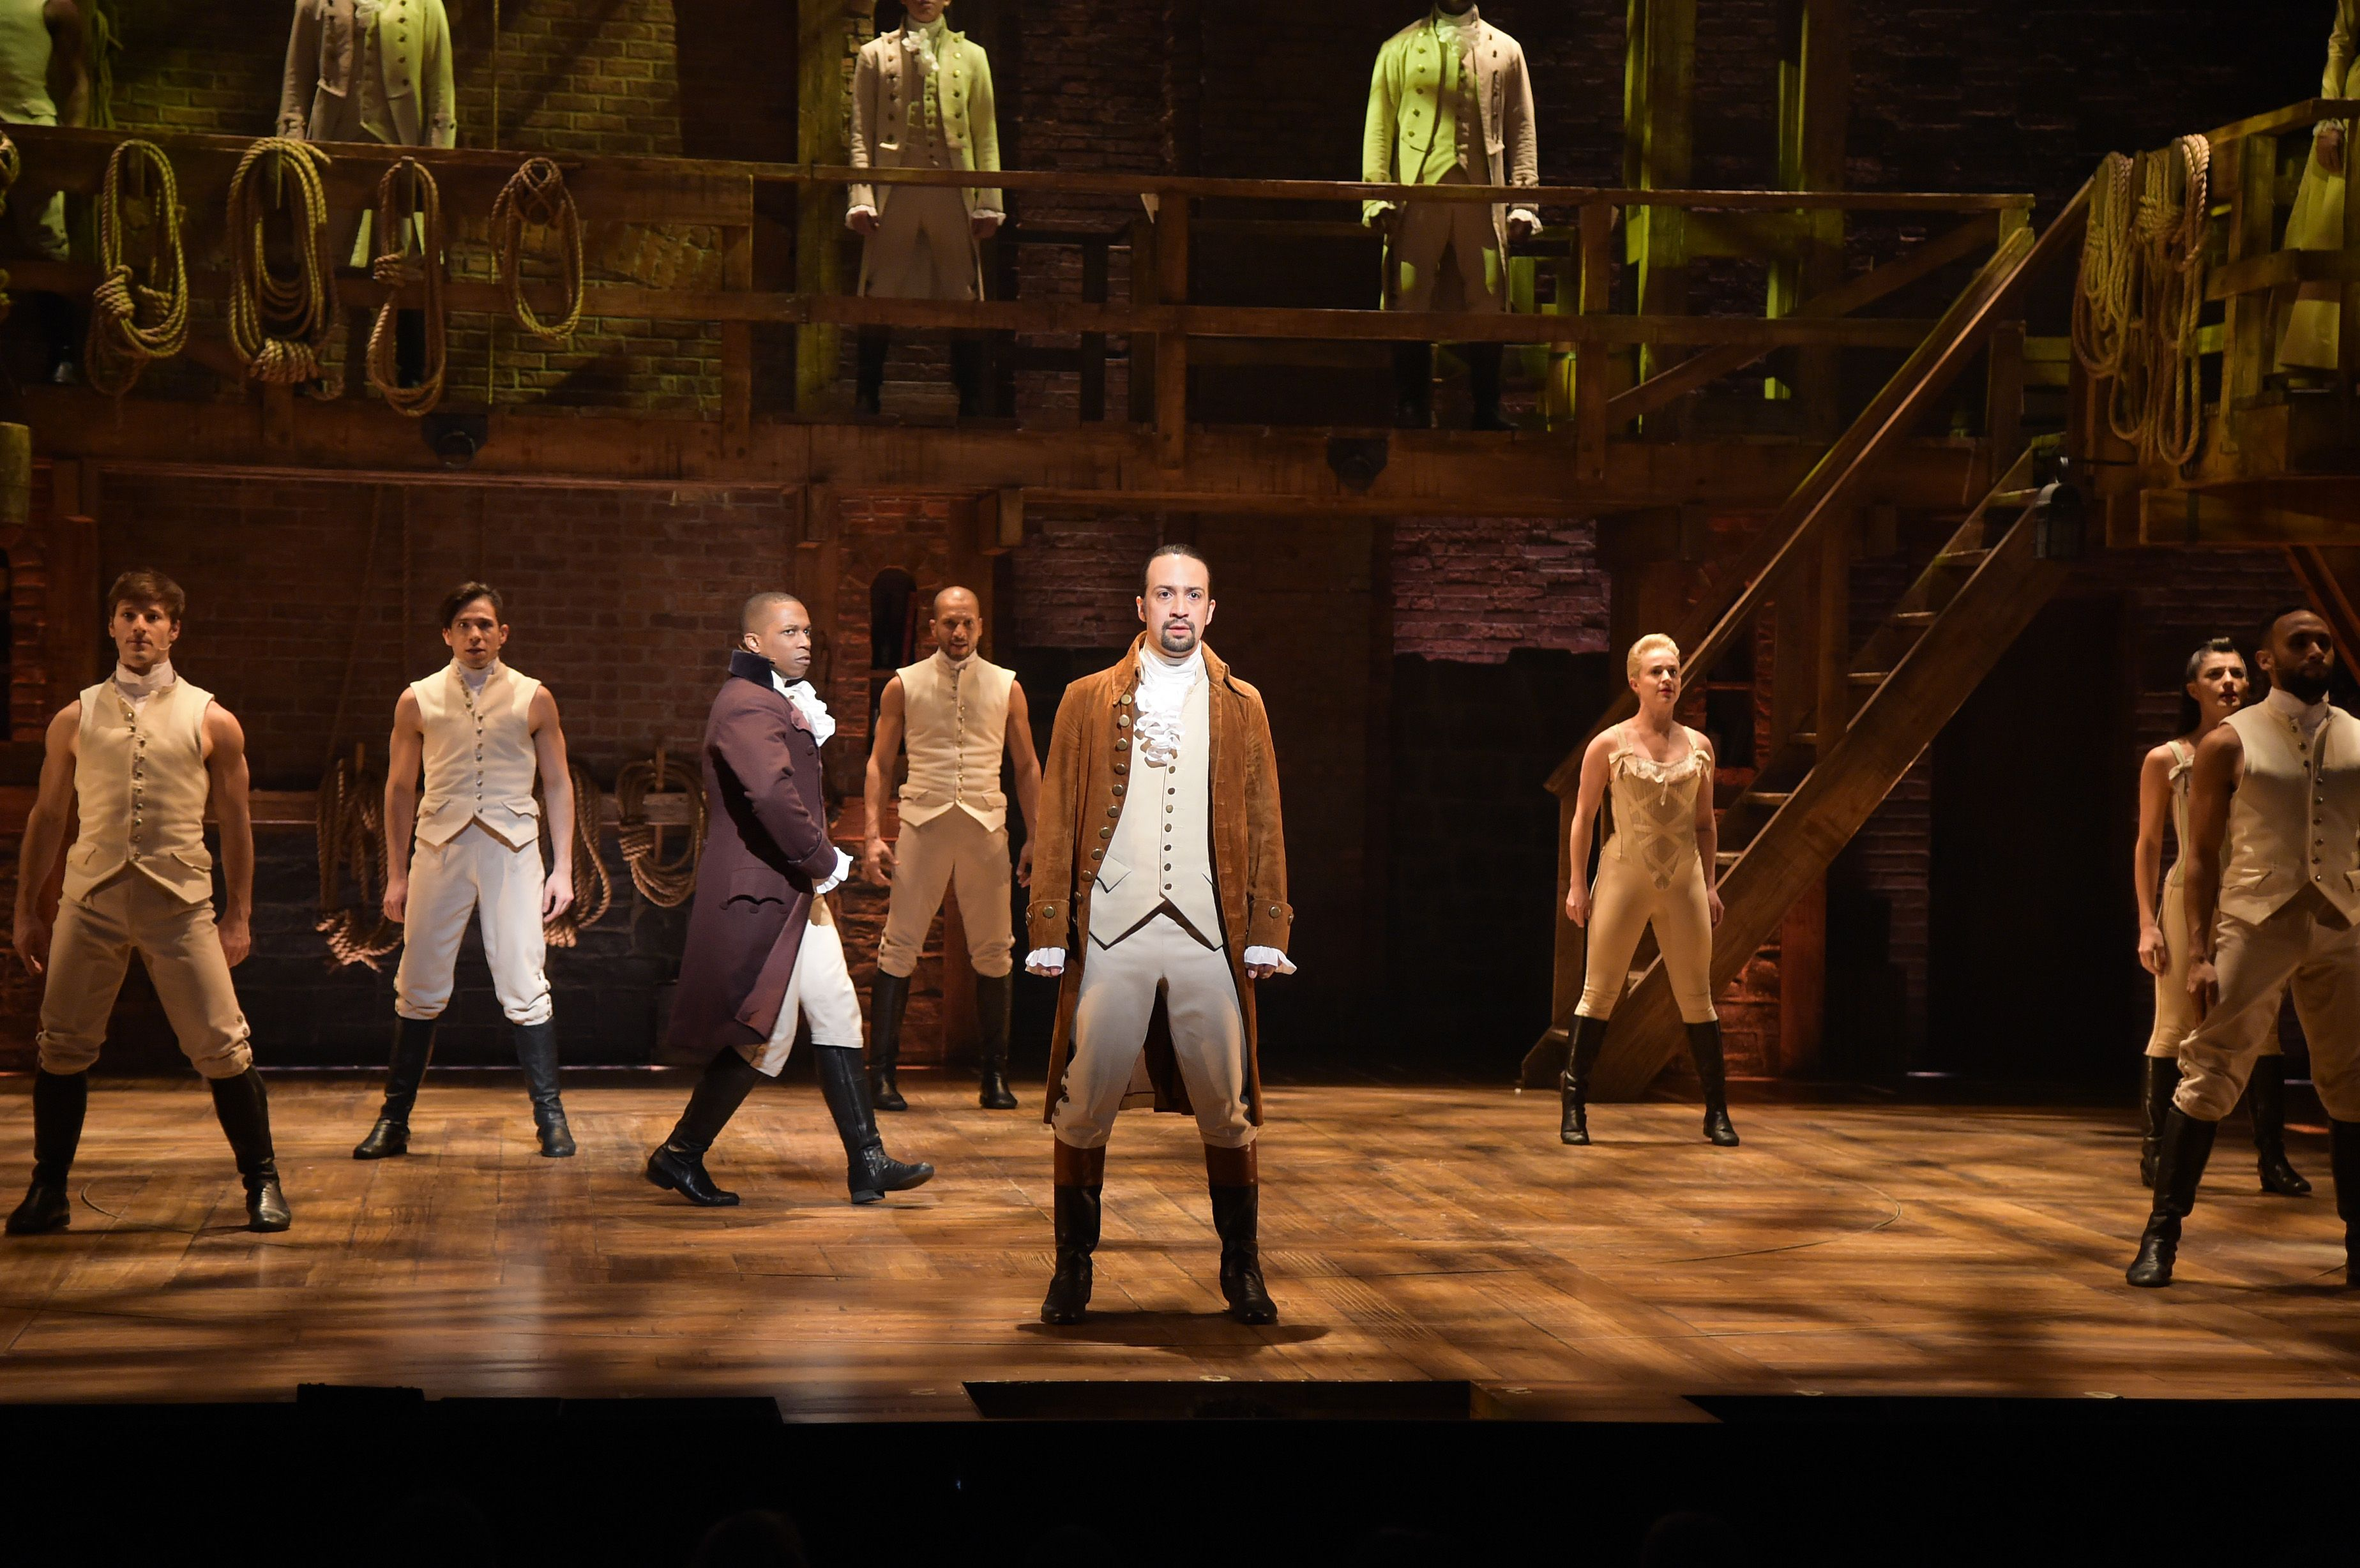 """Actor, composer Lin-Manuel Miranda and cast of """"Hamilton"""" perform on stage during """"Hamilton"""" GRAMMY performance / Getty Images"""